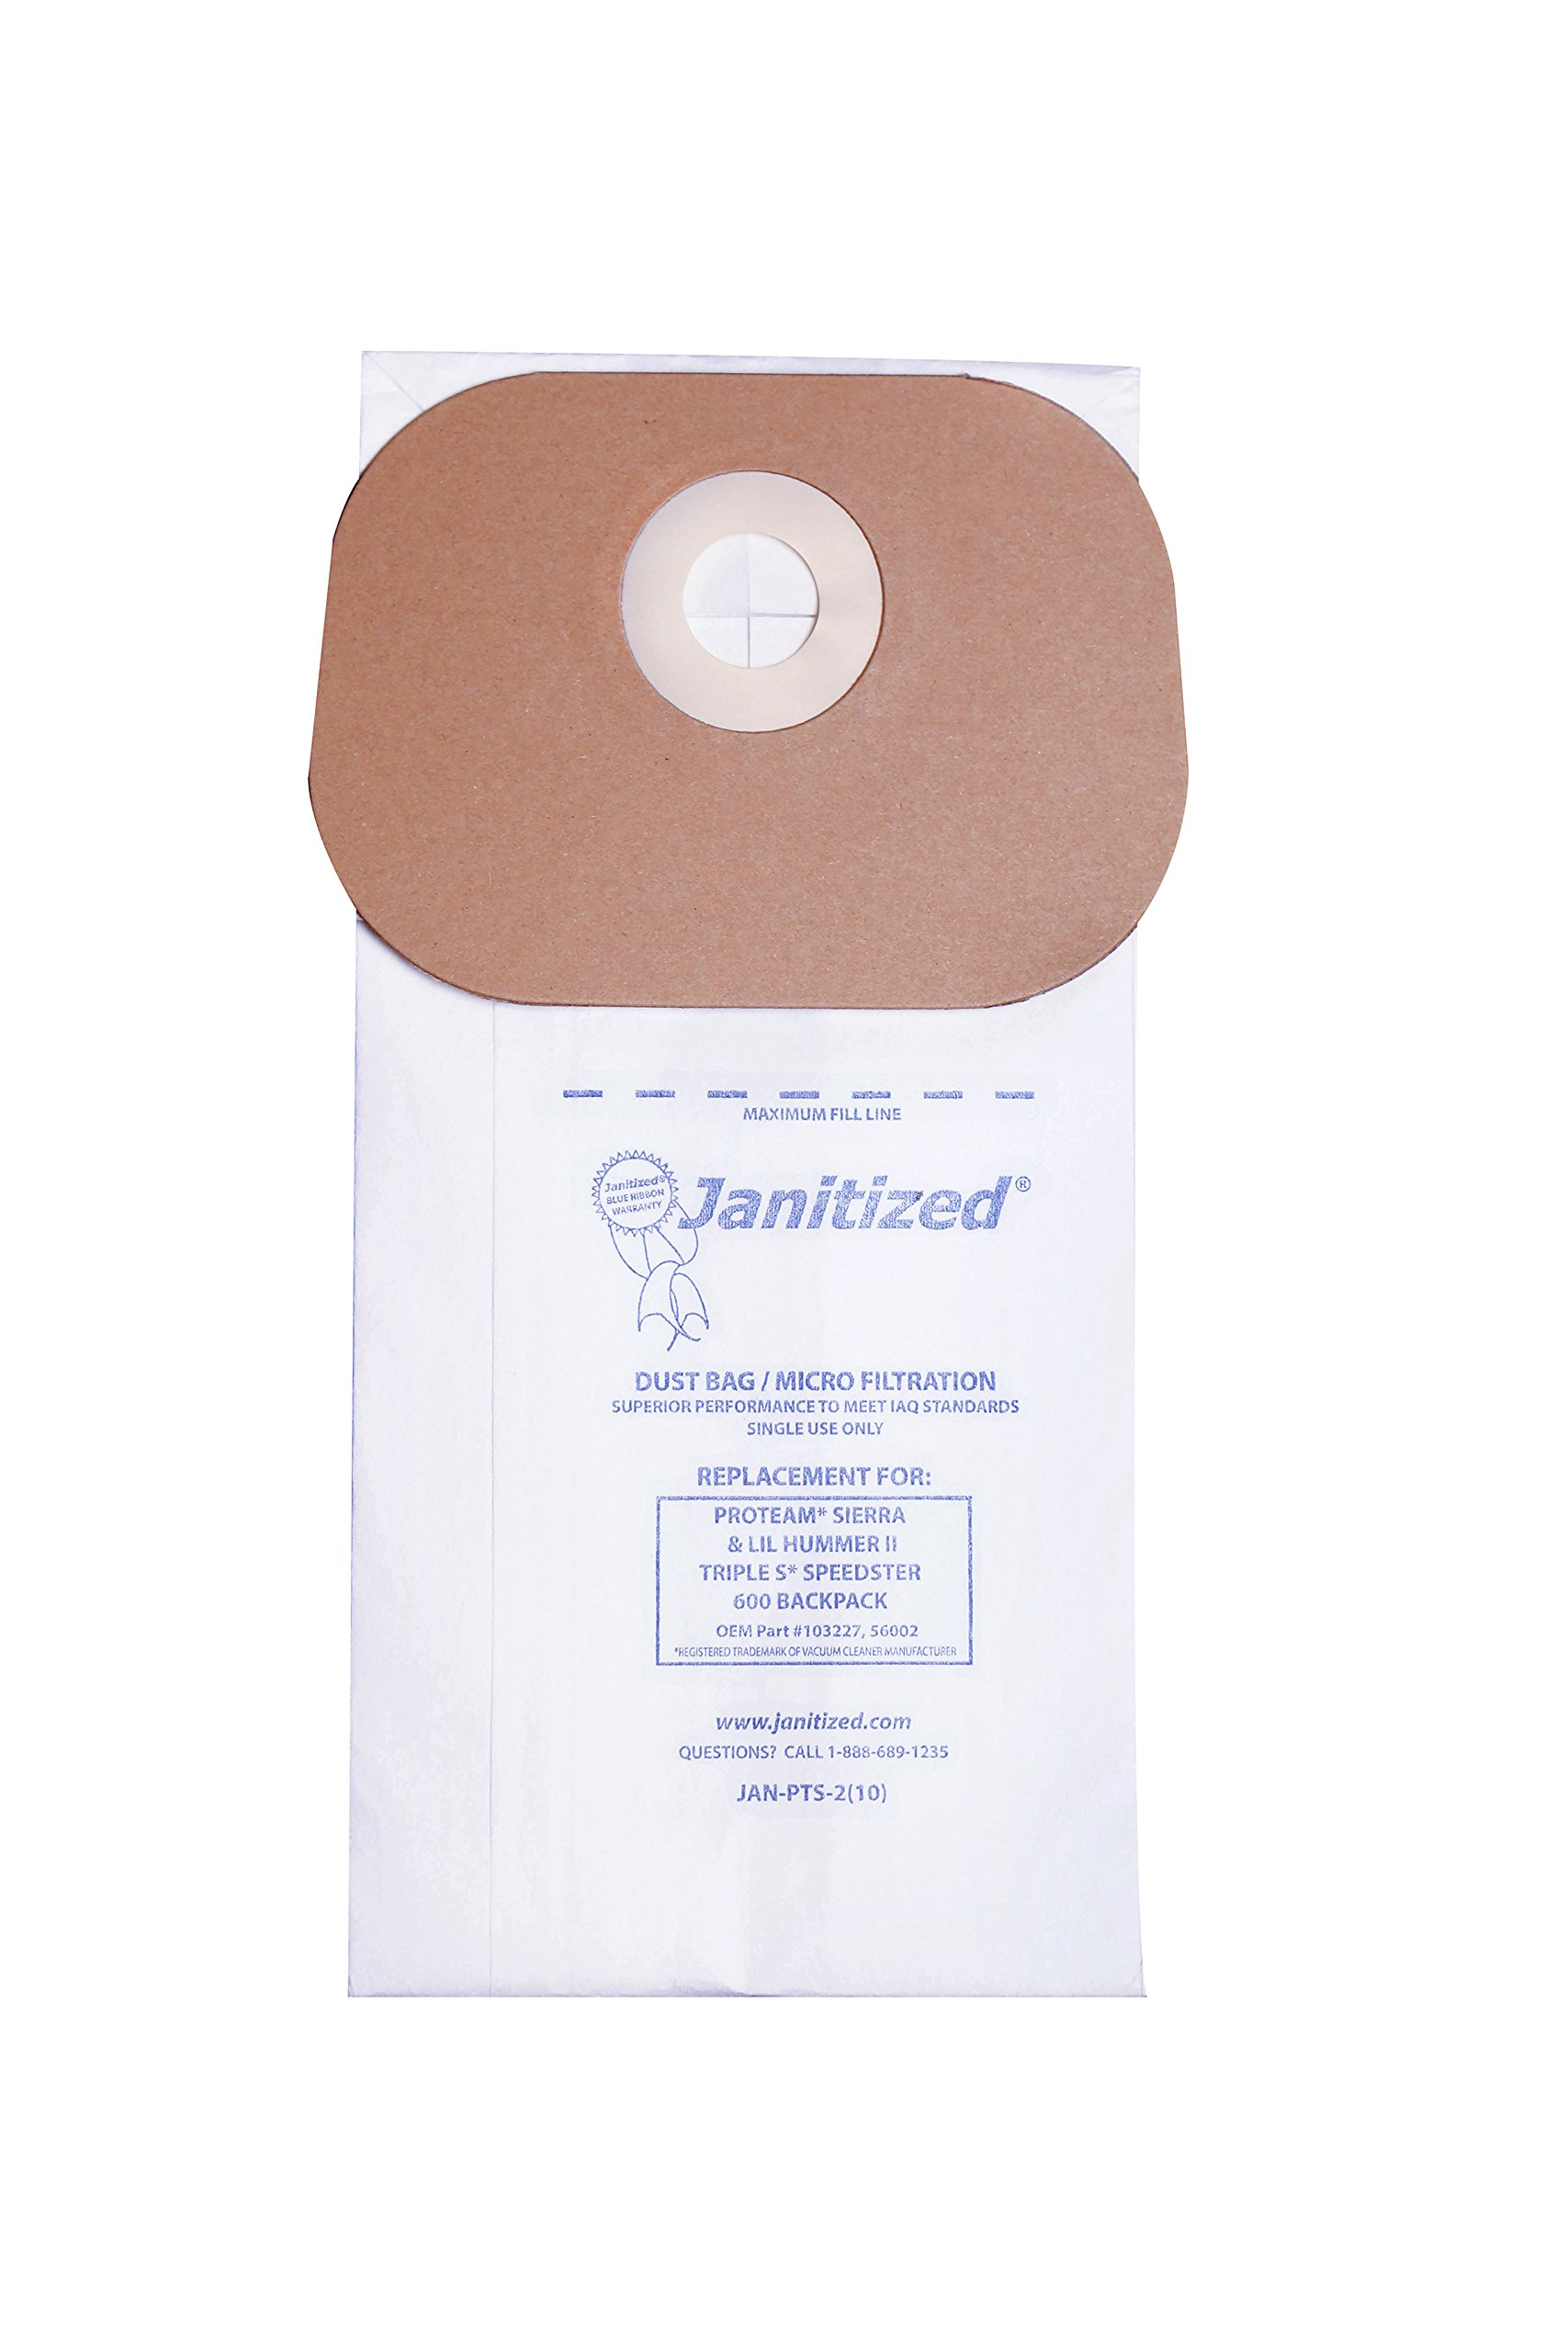 Janitized JAN-PTS-2(10) Paper Premium Replacement Commercial Vacuum Bag For ProTeam Sierra & Lil Hummer II, Triple S Speedster 600 Vacuum Cleaners (10 - 10 packs) by Janitized